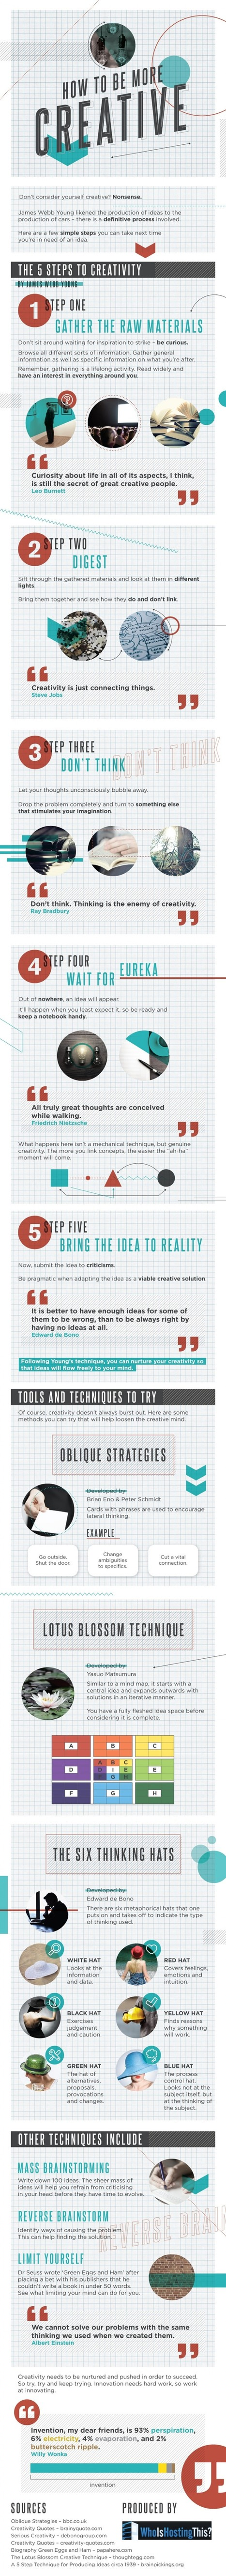 How to Be More Creative [Infographic]   WhoIsHostingThis   #TheMarketingAutomationAlert   Social Media Marketing Tips and Tools   Scoop.it